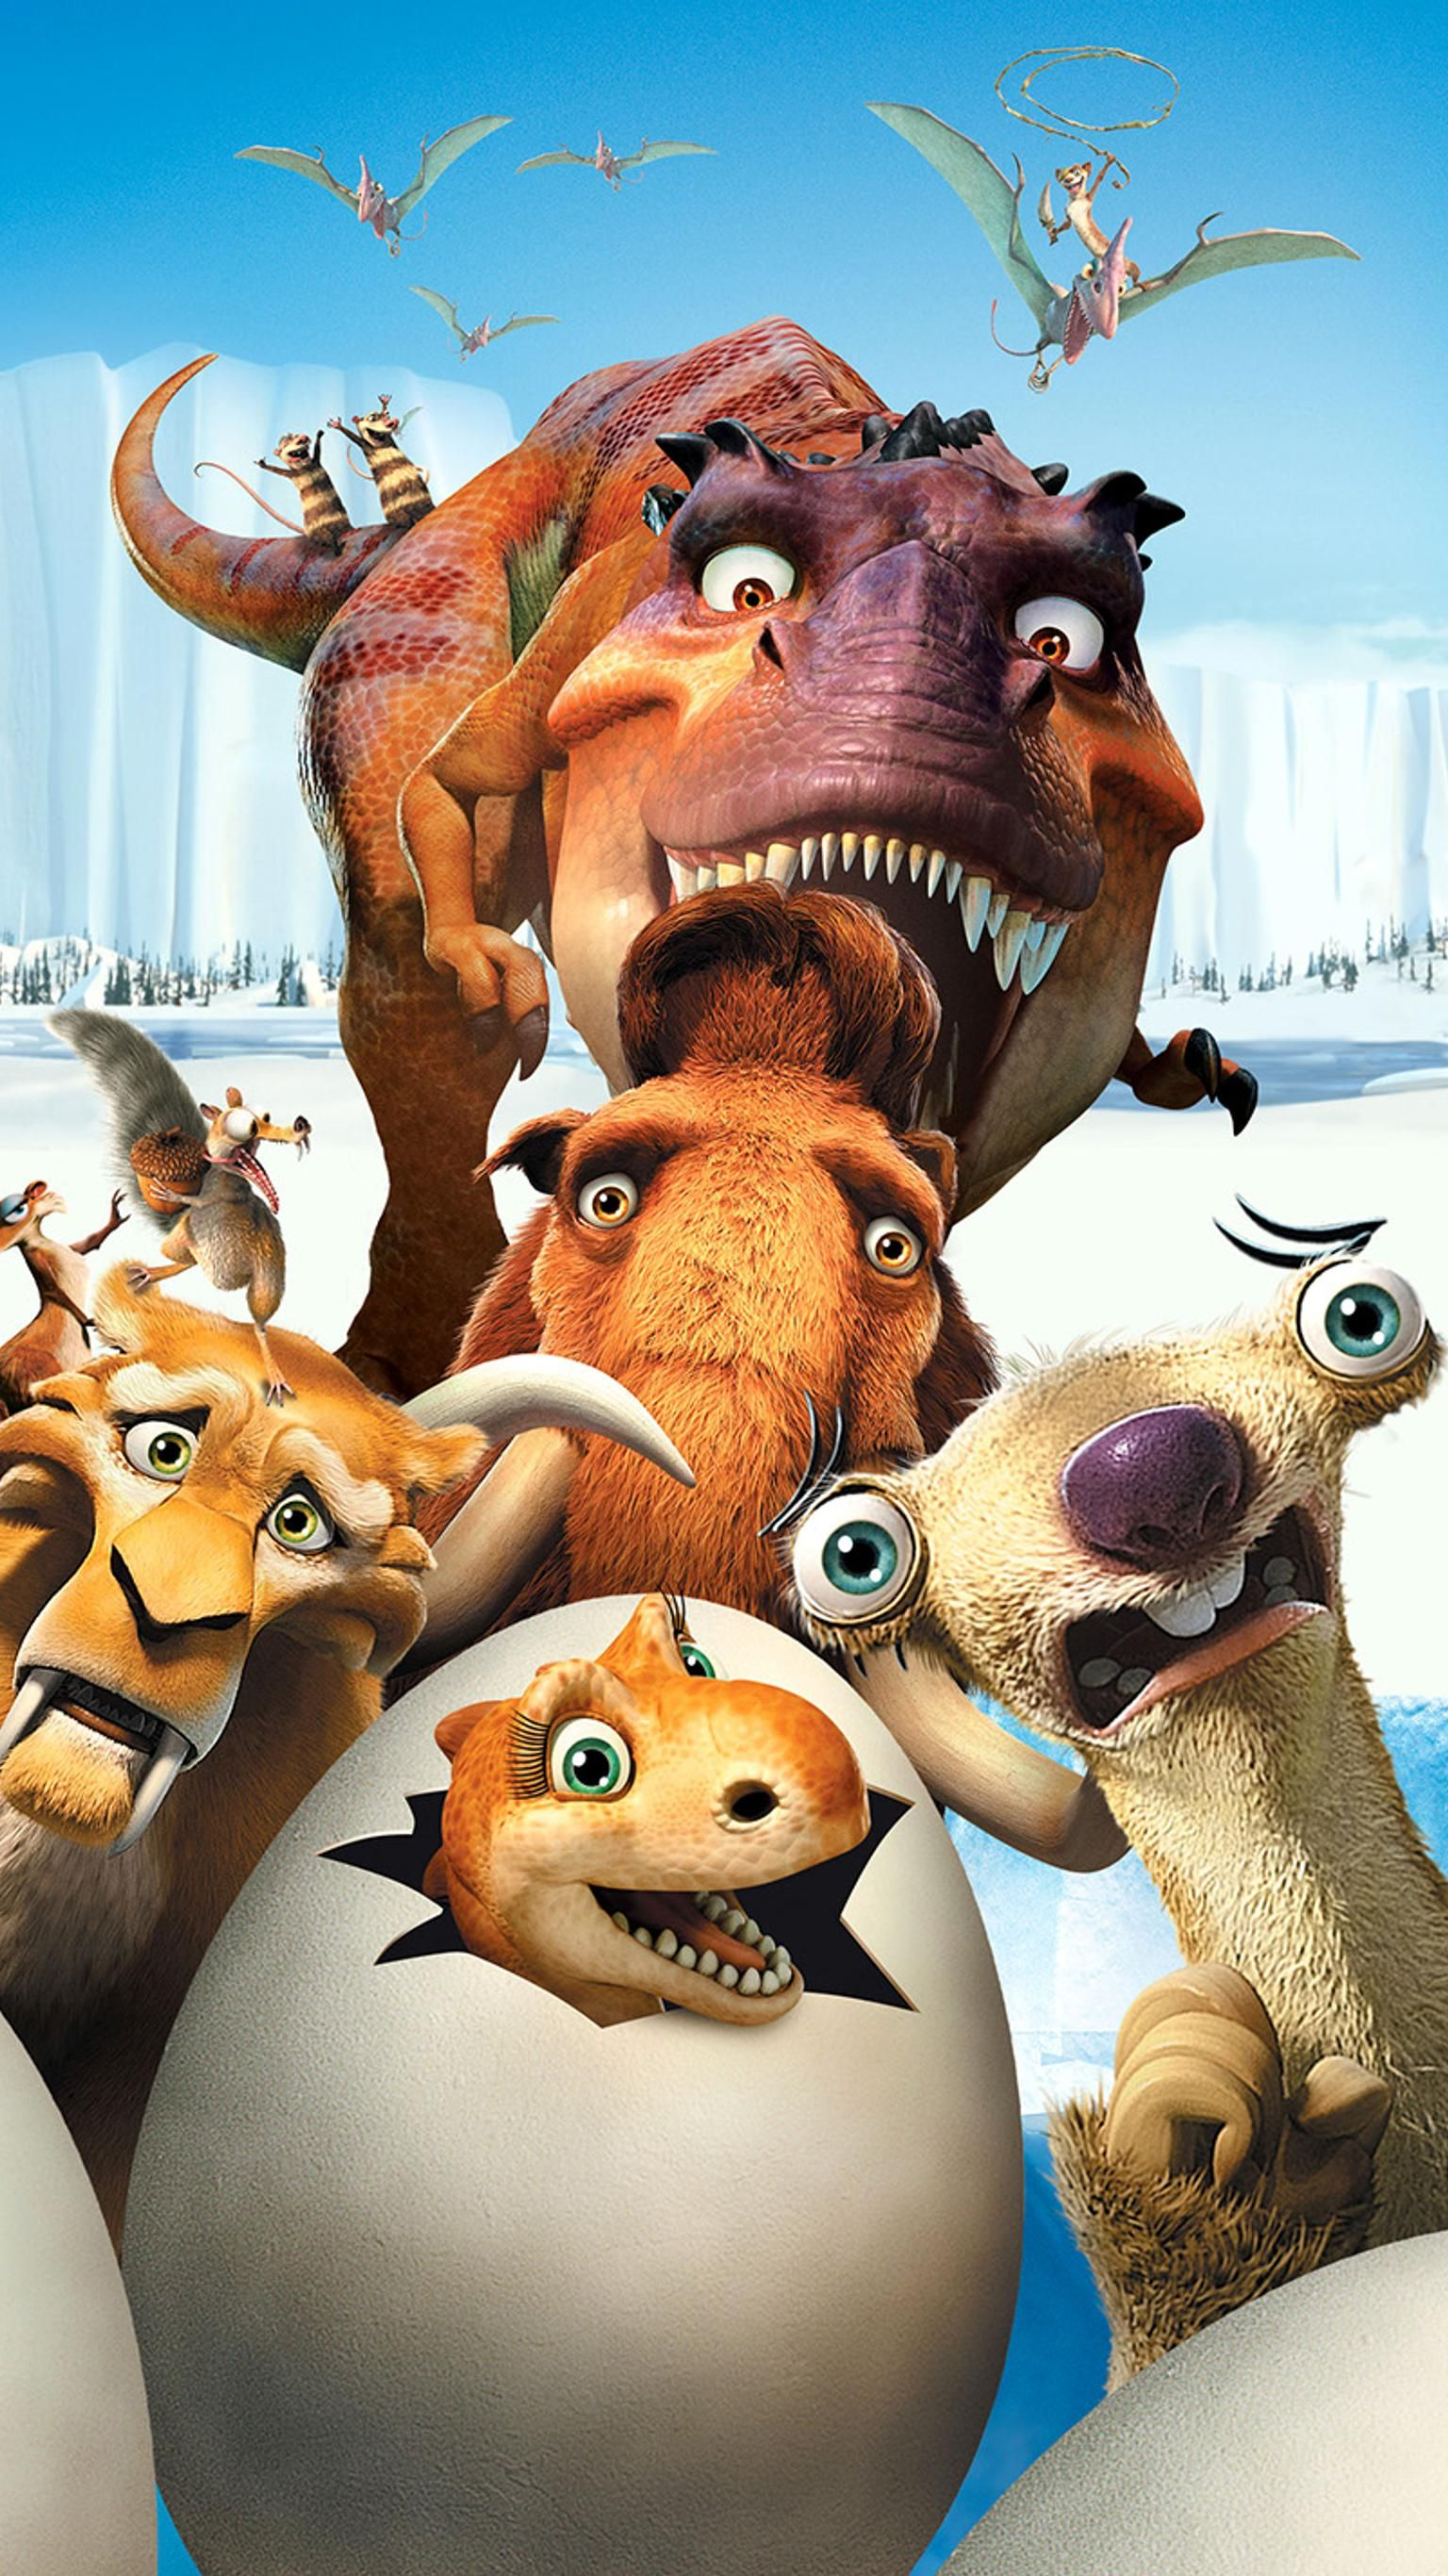 Ice Age Dawn Of The Dinosaurs 2009 Phone Wallpaper Moviemania Cute Disney Wallpaper Movie Wallpapers Cute Disney Drawings